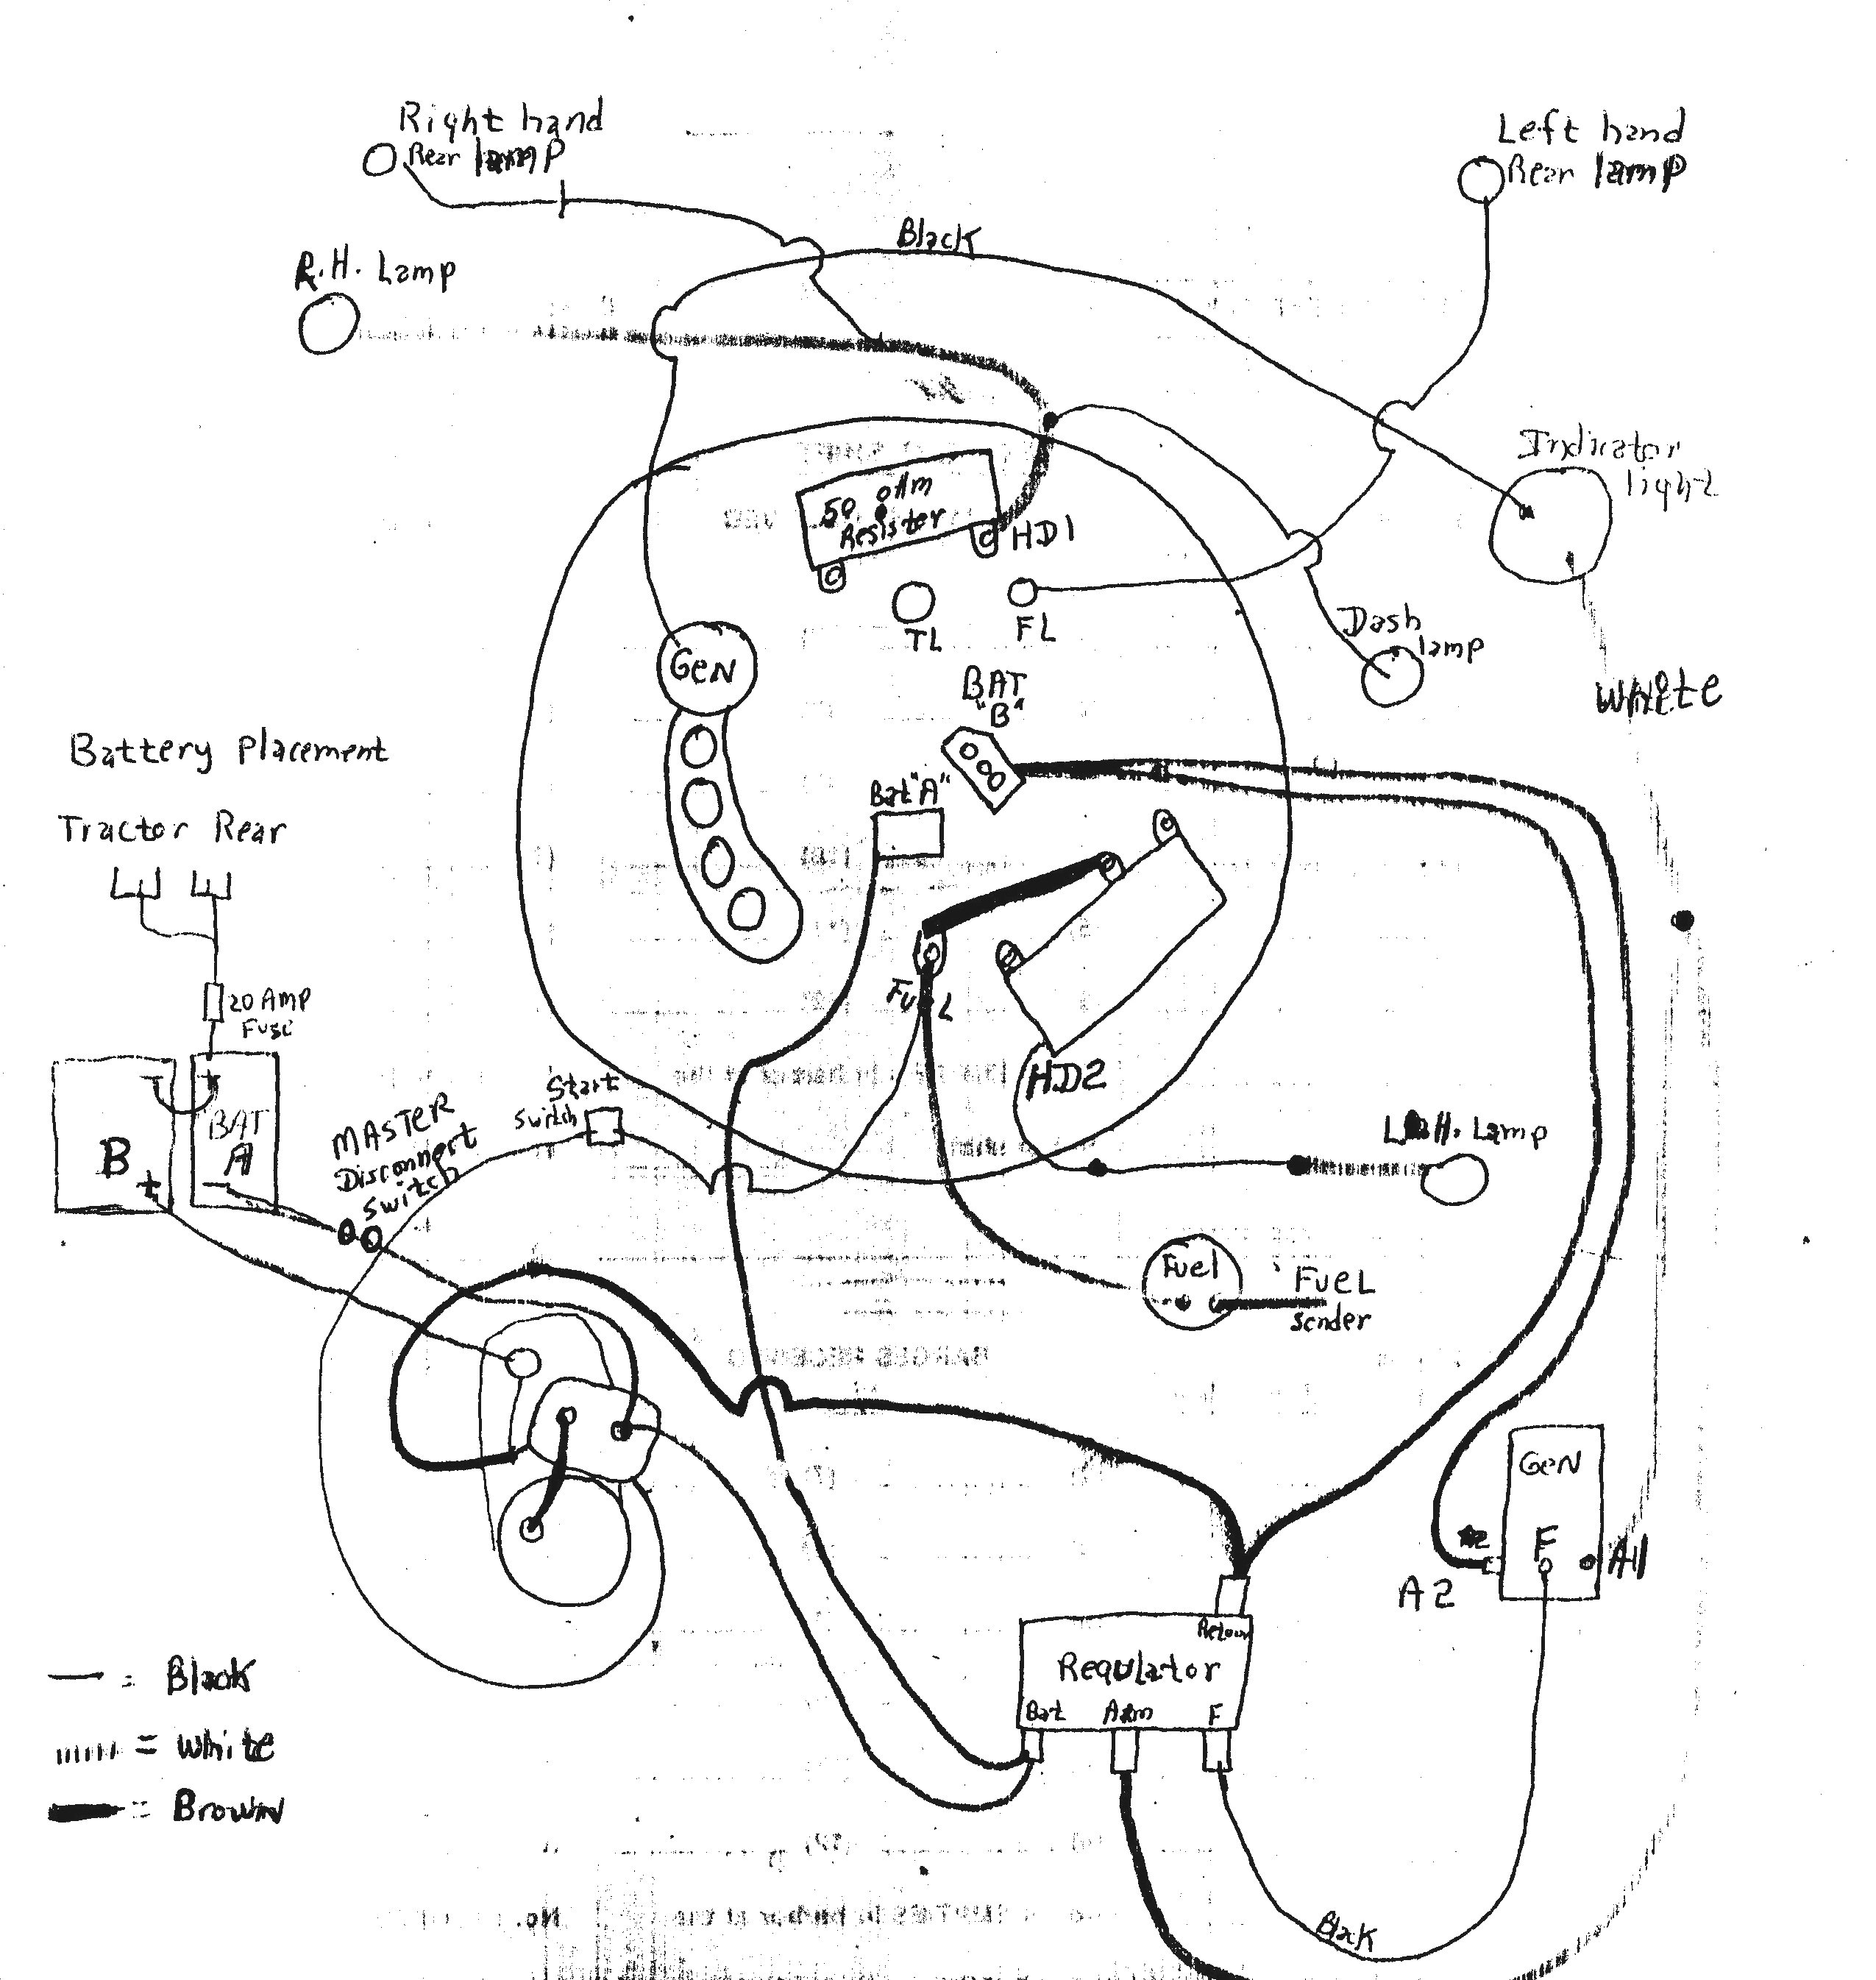 john deere 24 volt wiring diagram simple wiring diagram rh david huggett co uk 12 and 24 Volt Wiring john deere 24 volt starter wiring diagram